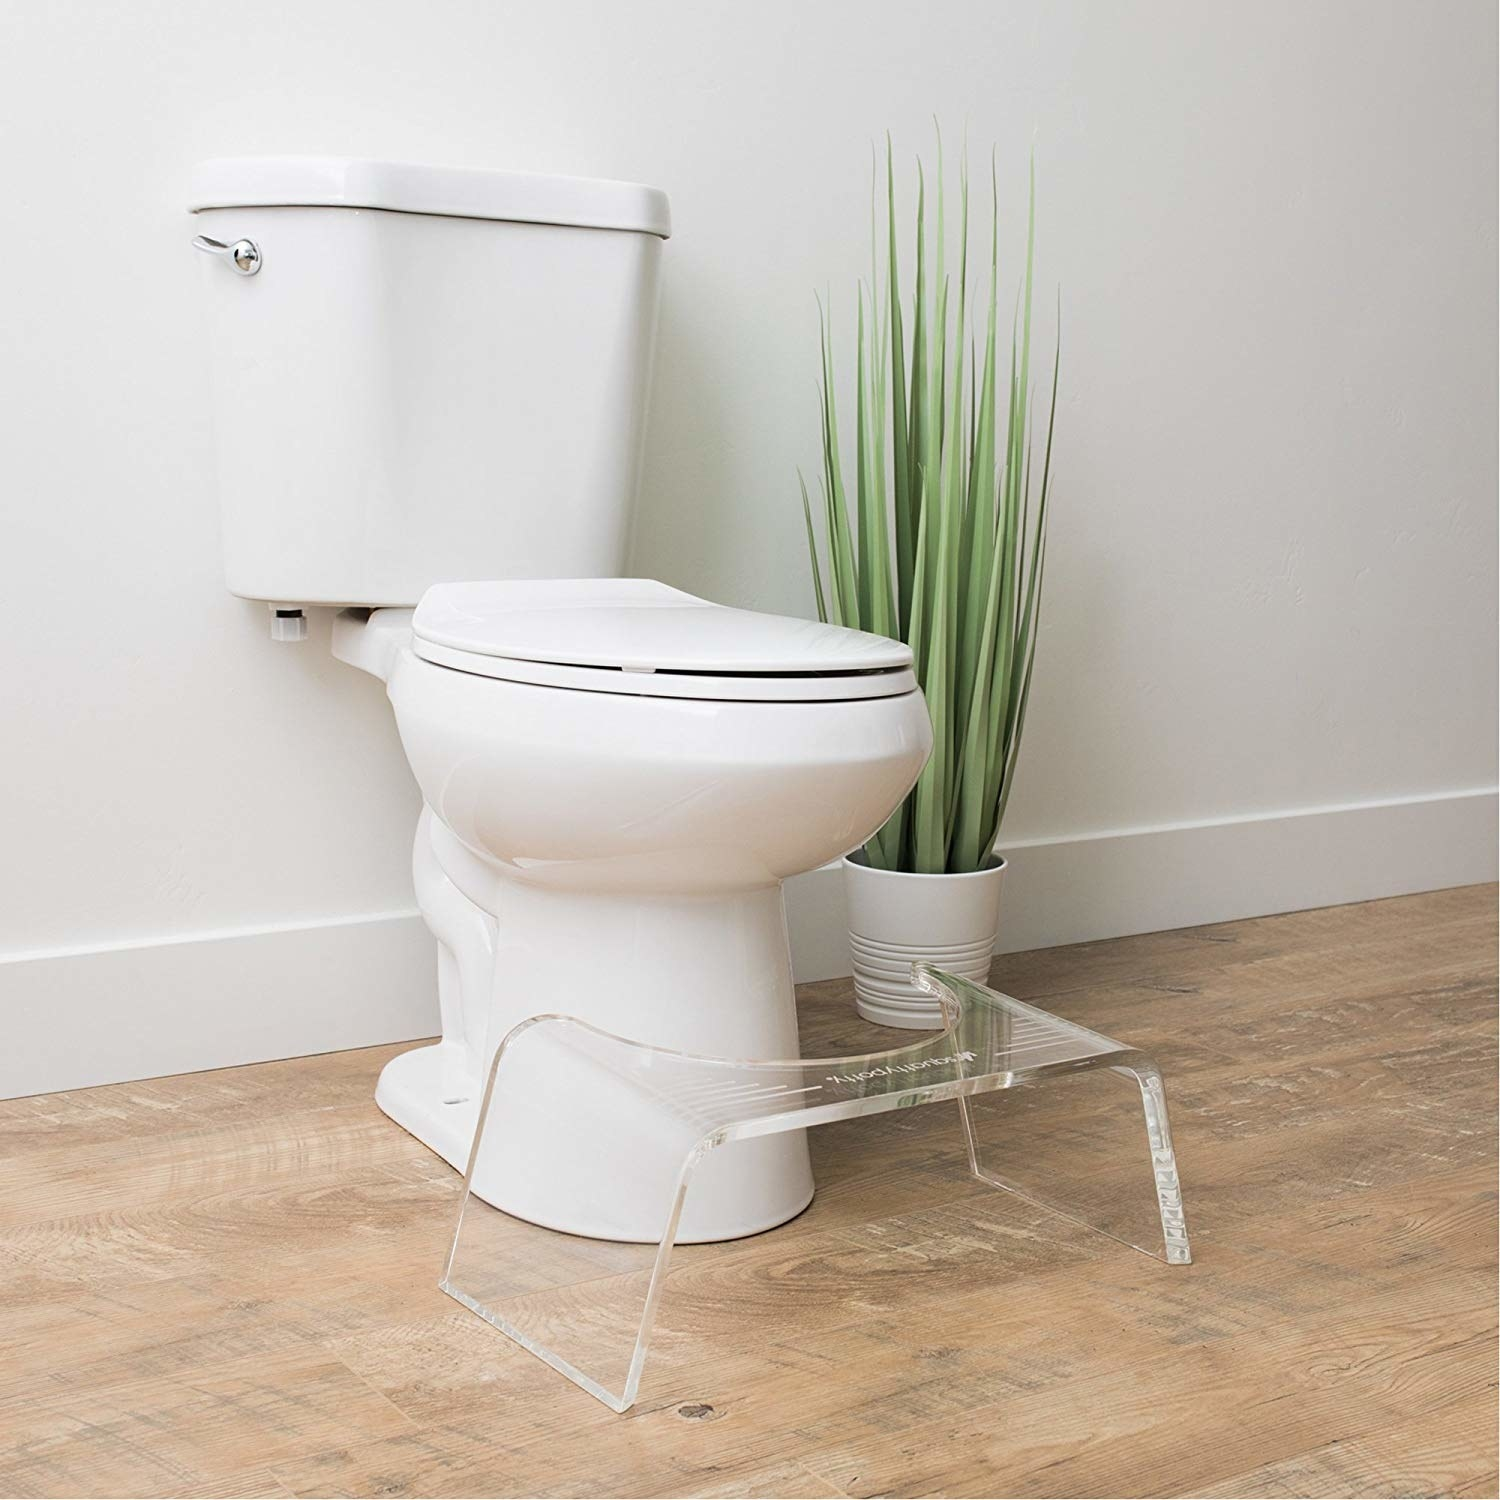 The clear stool in front of a toilet